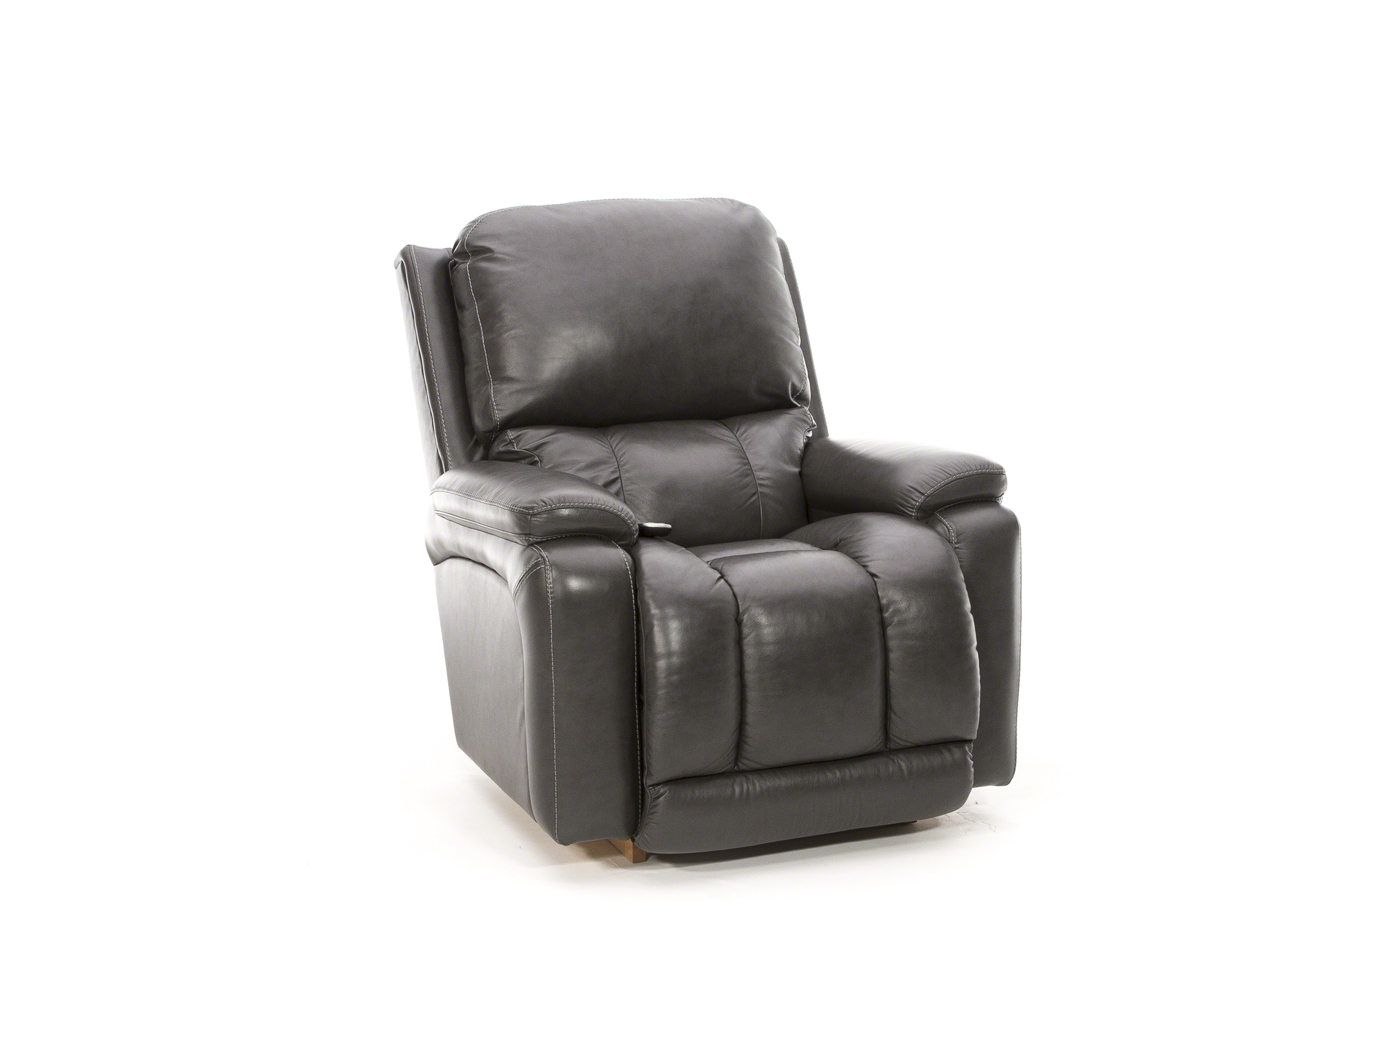 amazon swivel dp rocker recliner mayfair franklin dining slate small kitchen com